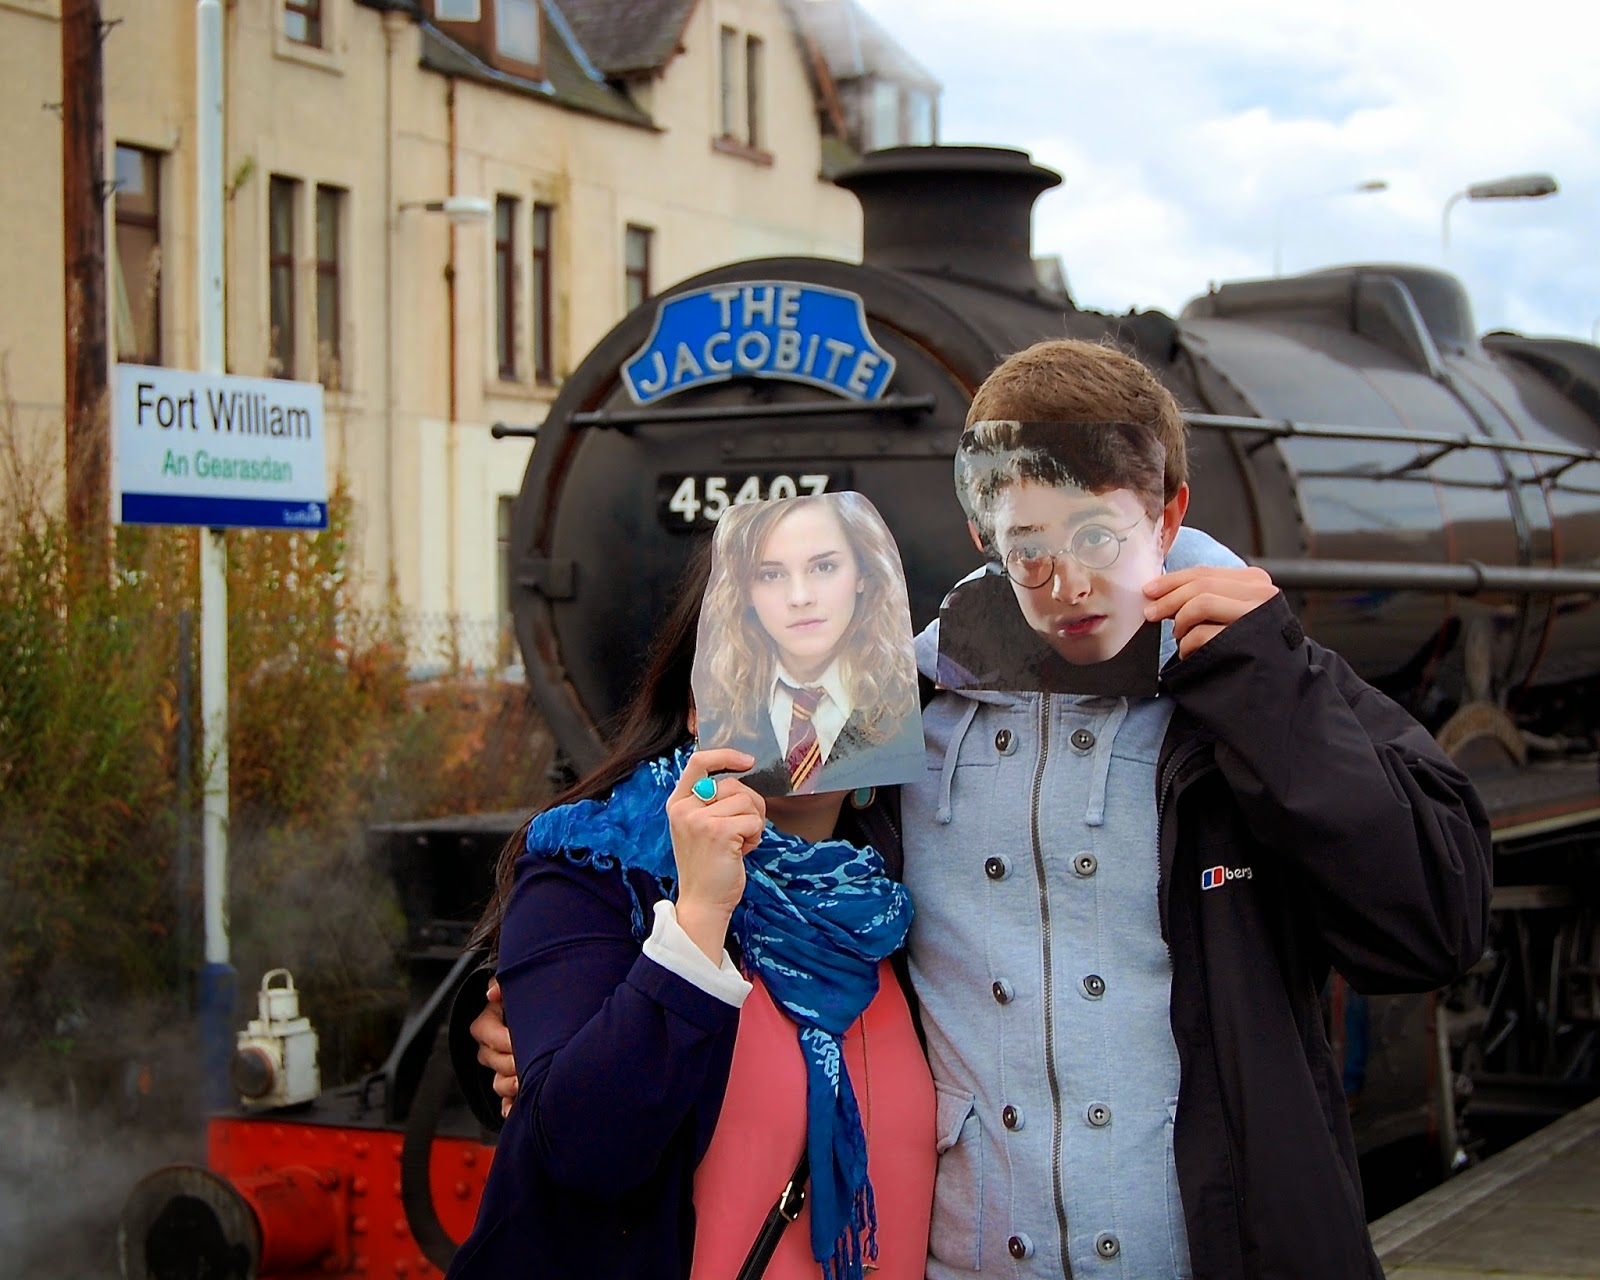 Hermione and Harry ready to board the Hogwart's Express